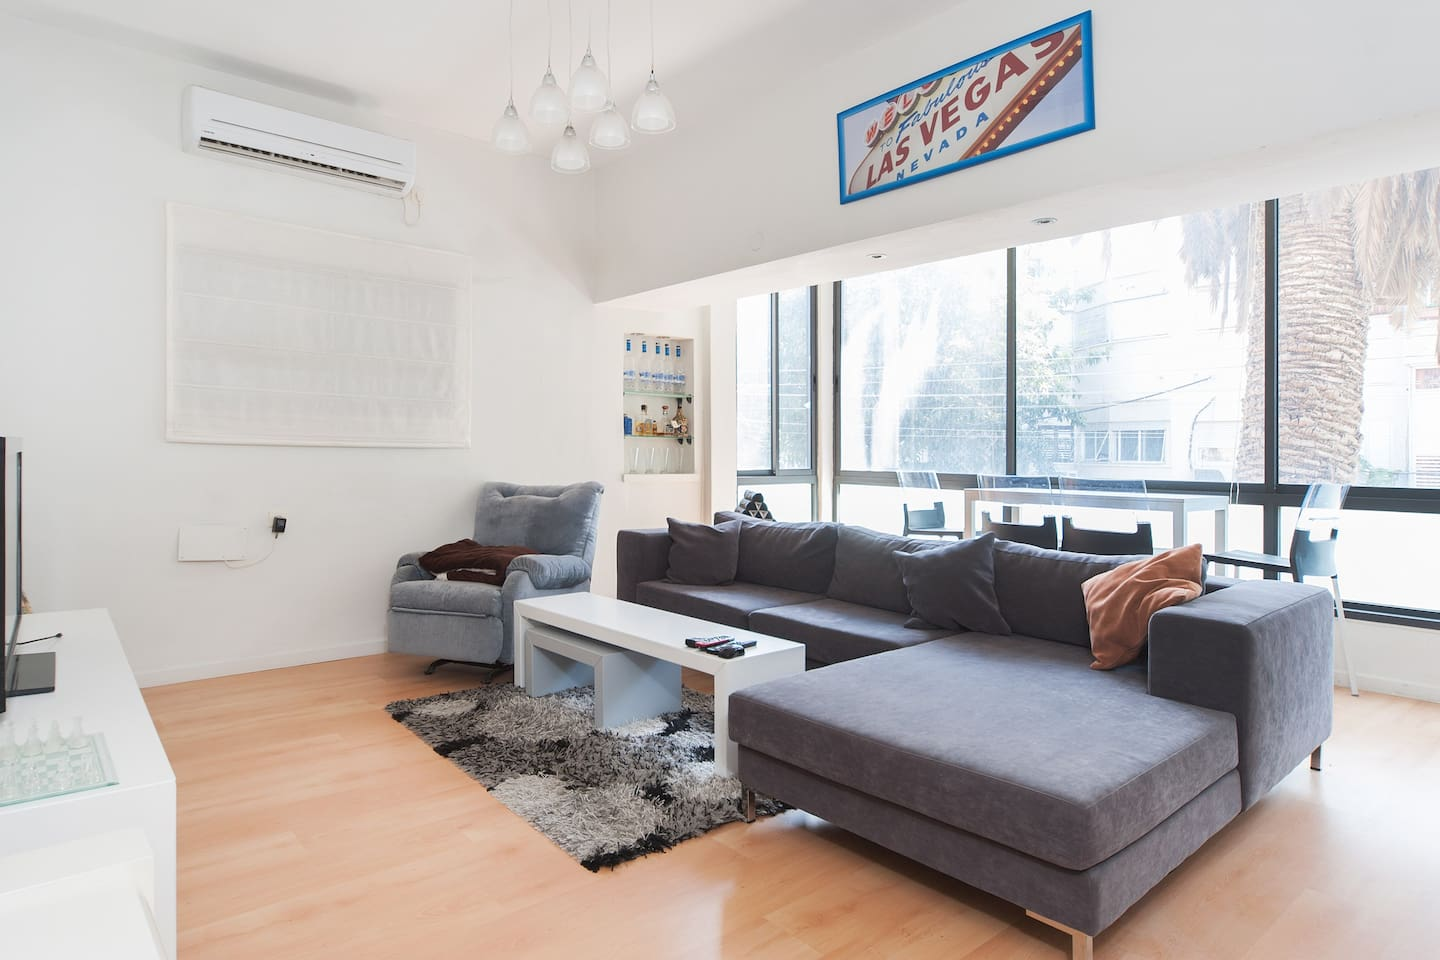 Spacious air conditioned living room with lots of natural light entering from the glass fronted window viewing the peaceful street